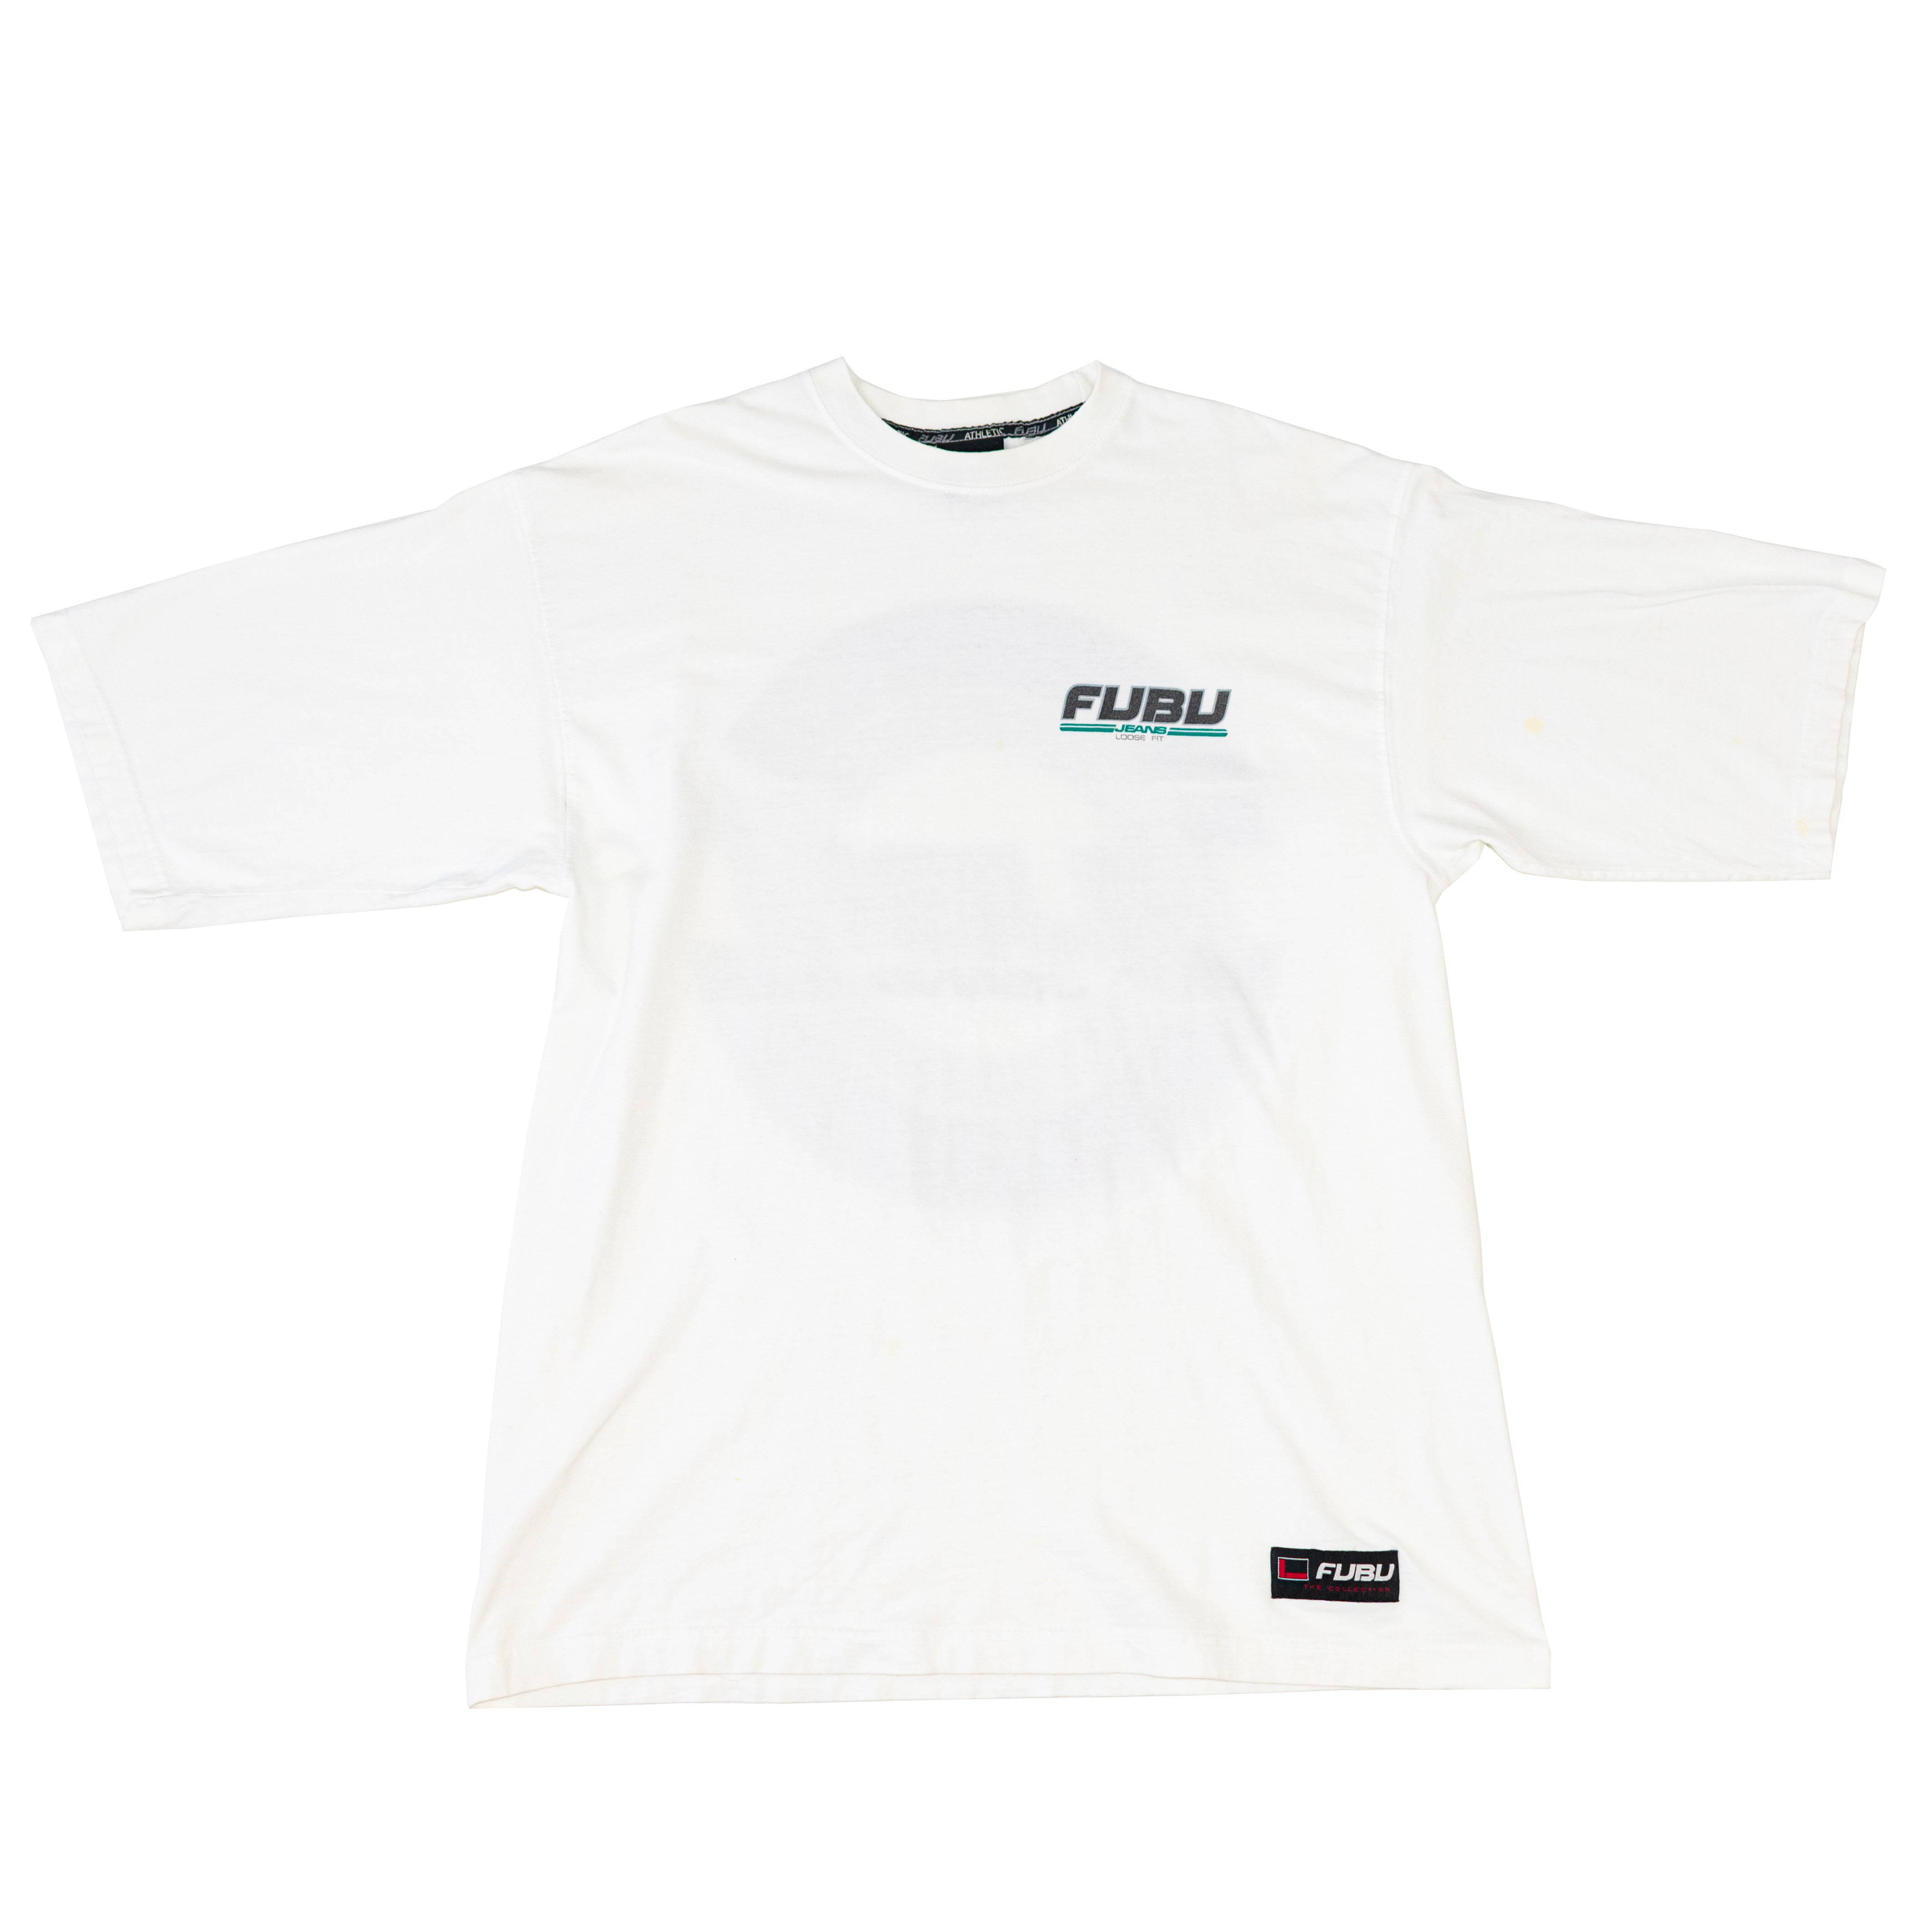 90s Fubu Jeans Loose Fit Double Sided T-Shirt